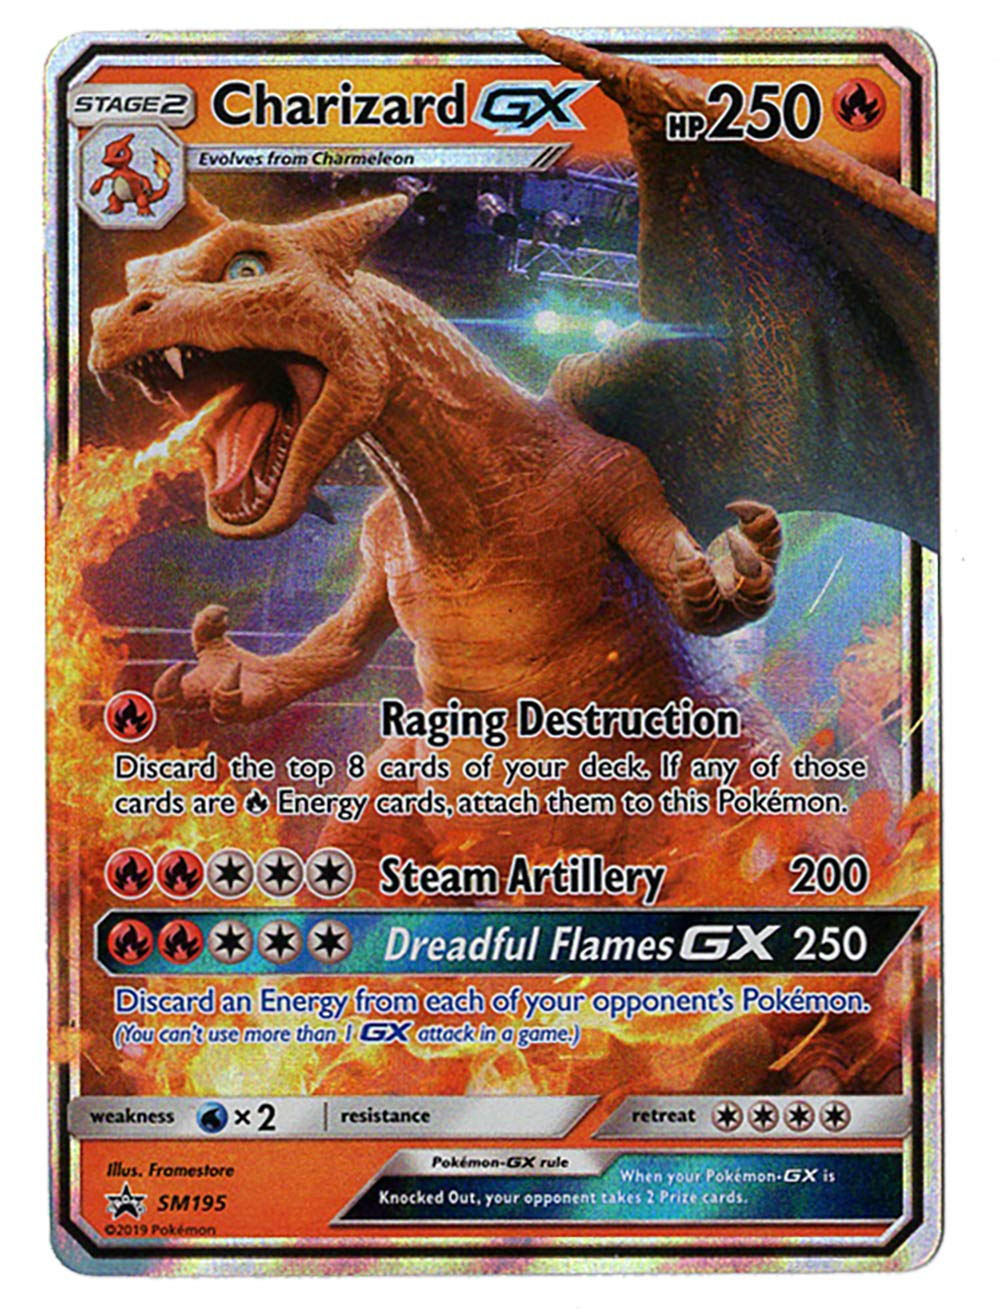 Charizard GX - SM195 - Detective Pikachu Promo Card - Holo FOIL - NM/M - 100% Guaranteed Authentic